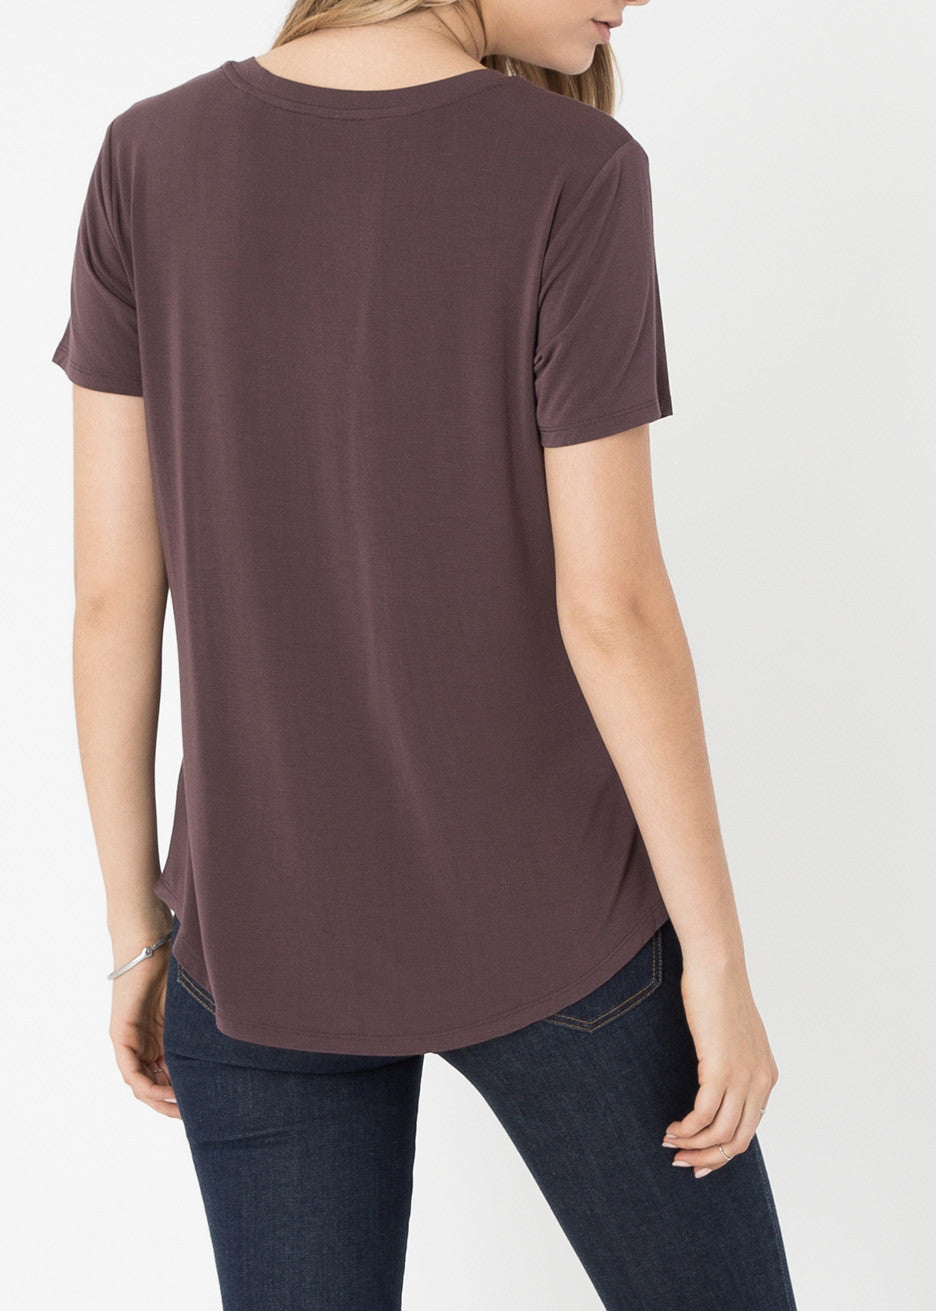 The Sleek Jersey Pocket Tee